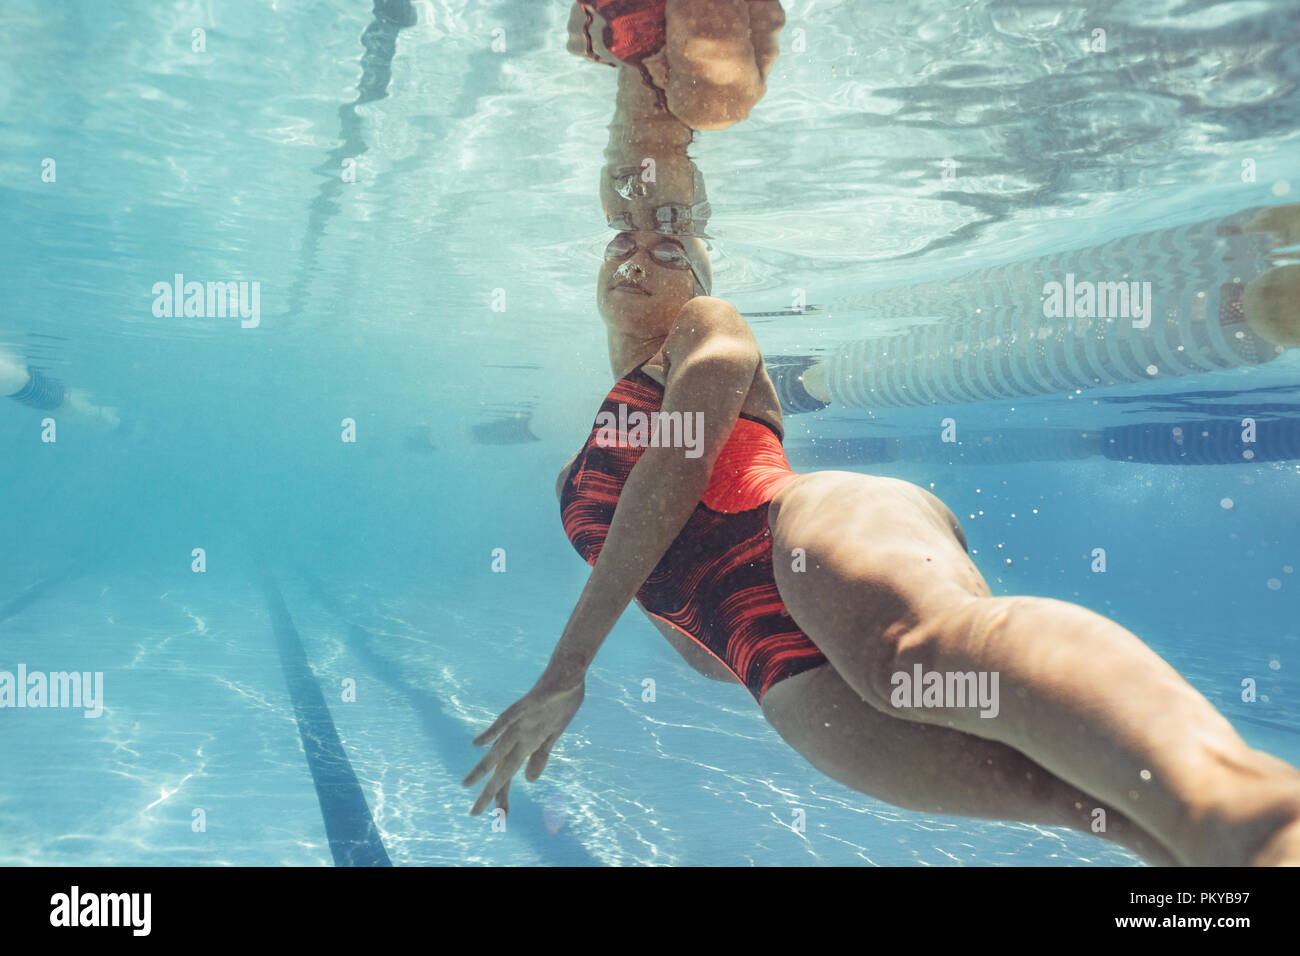 Underwater shot of female swimmer in action inside pool. Fit young female swimmer training in the pool. Stock Photo